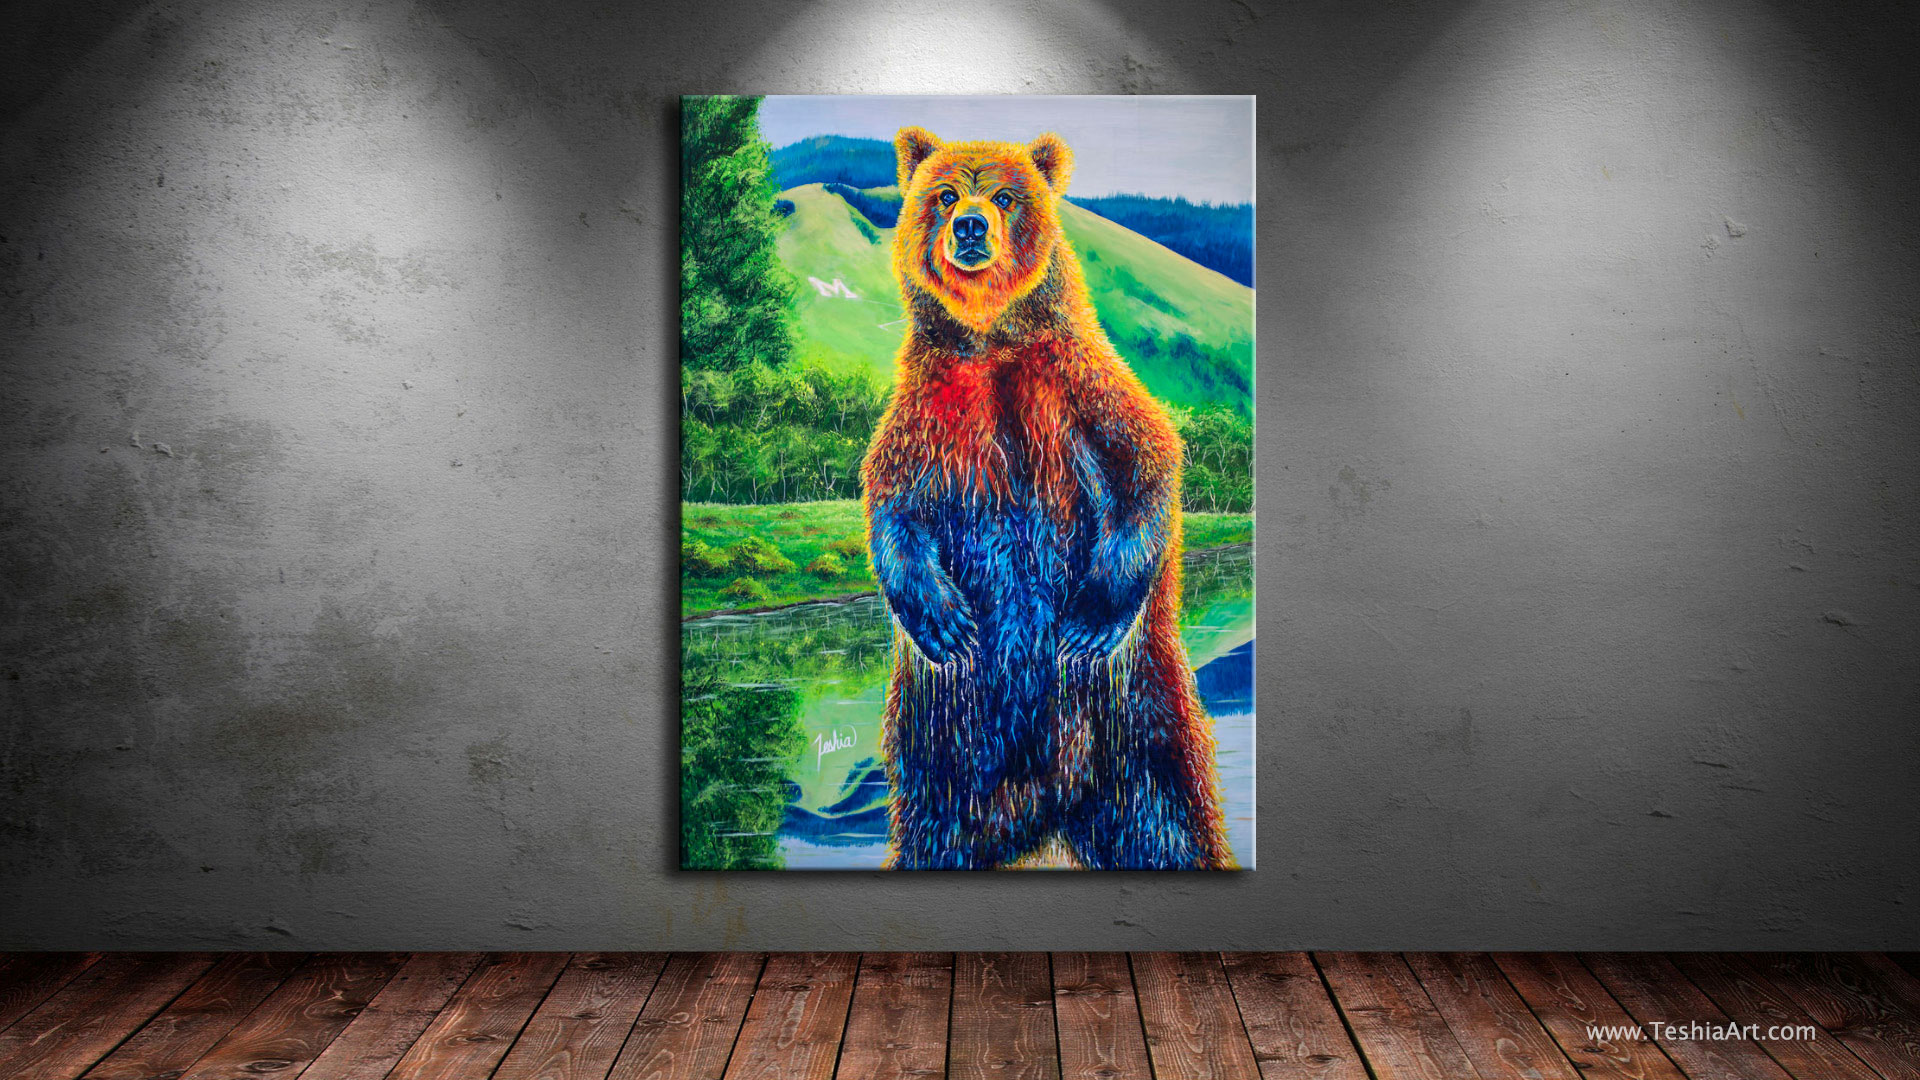 https://teshia-freseman.pixels.com/featured/the-zookeeper-special-missoula-montana-edition-teshia-art.html